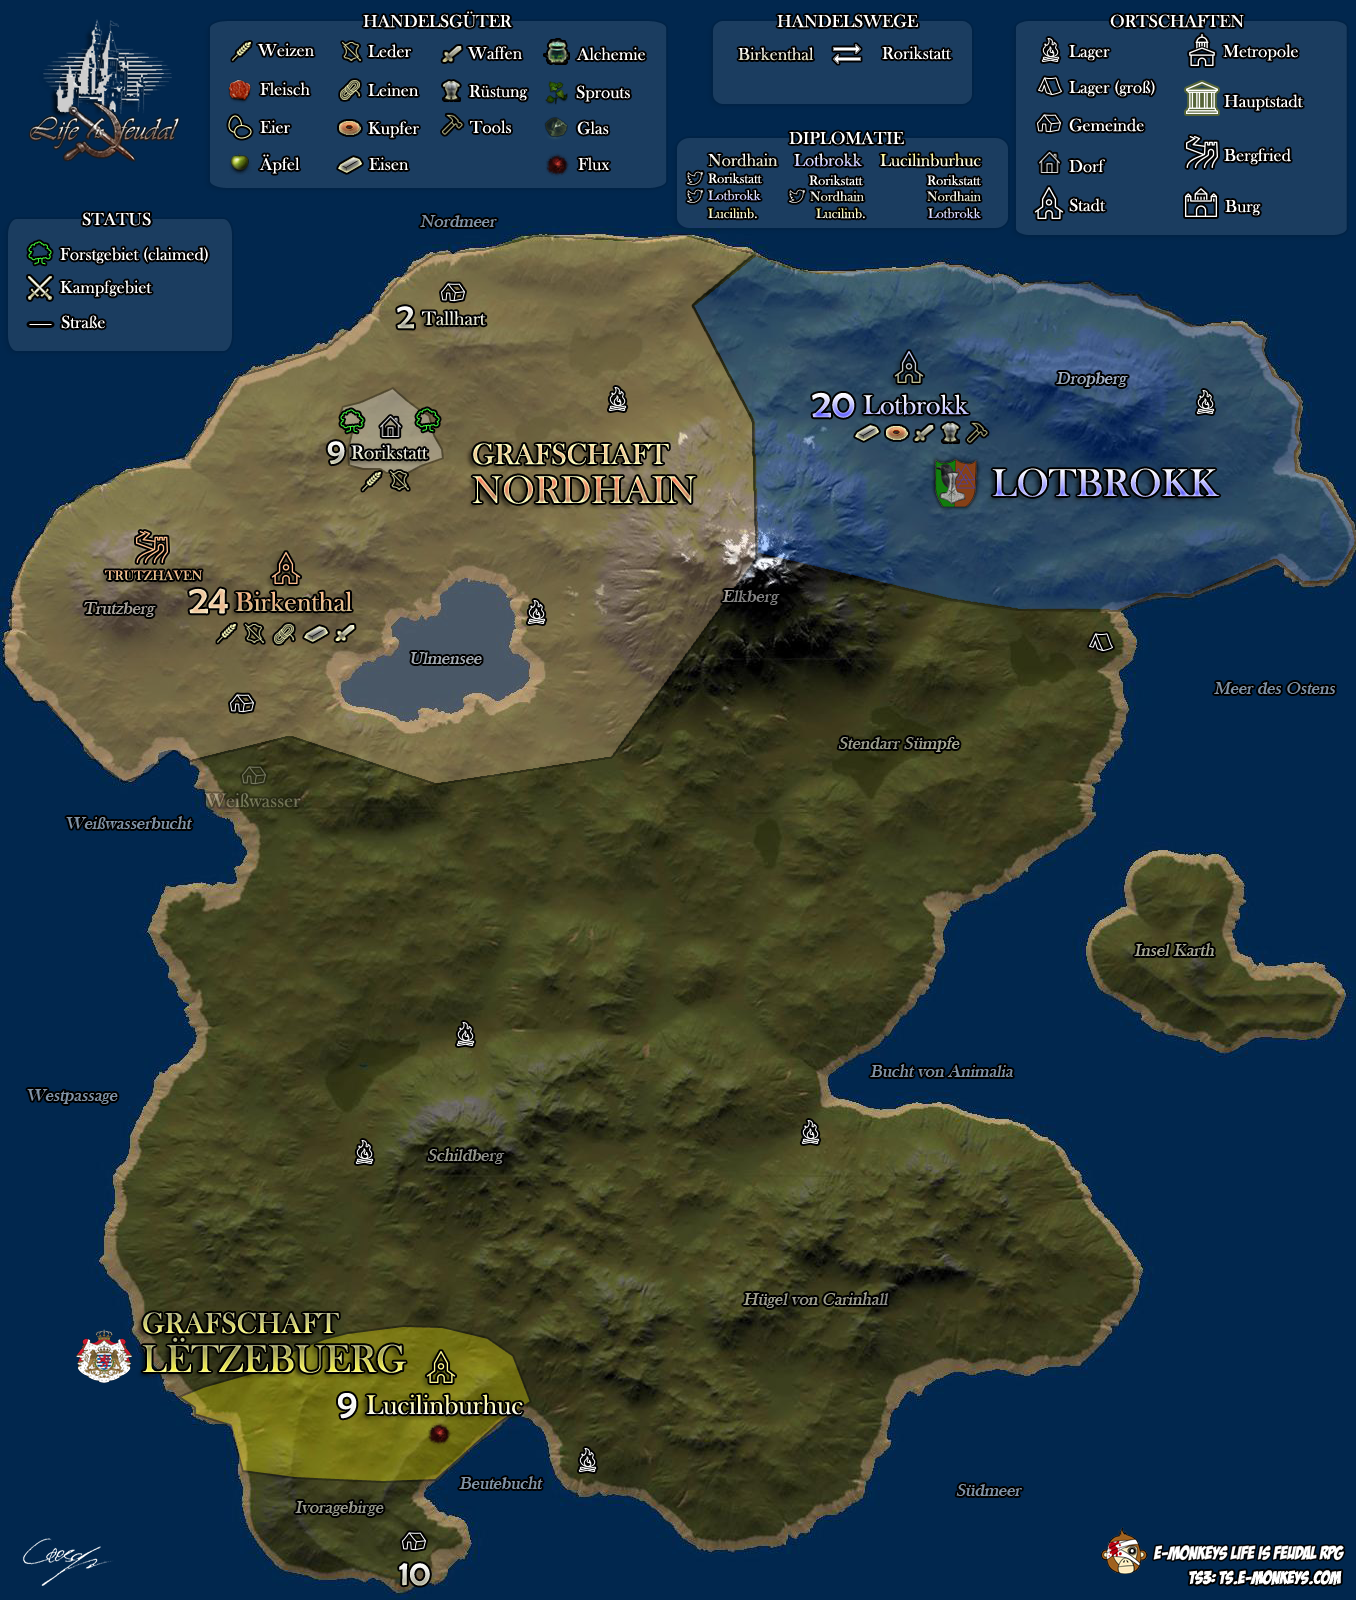 Life is Feudal • View topic - Map needs area names! Life Is Feudal Map on feudal system middle ages map, feudal japan map, torchlight 2 map, middle ages western europe map, ultima online map, ancient byzantine empire map, christendom middle ages map, sark channel islands map, russian states map, runes of magic map, 1500 s a roman expansion map, medieval village map, feudal system europe map, spain resource map, european middle ages land use map, archeage map, feudal manor map, fallen earth map, medieval manor map, ancient roman world map,